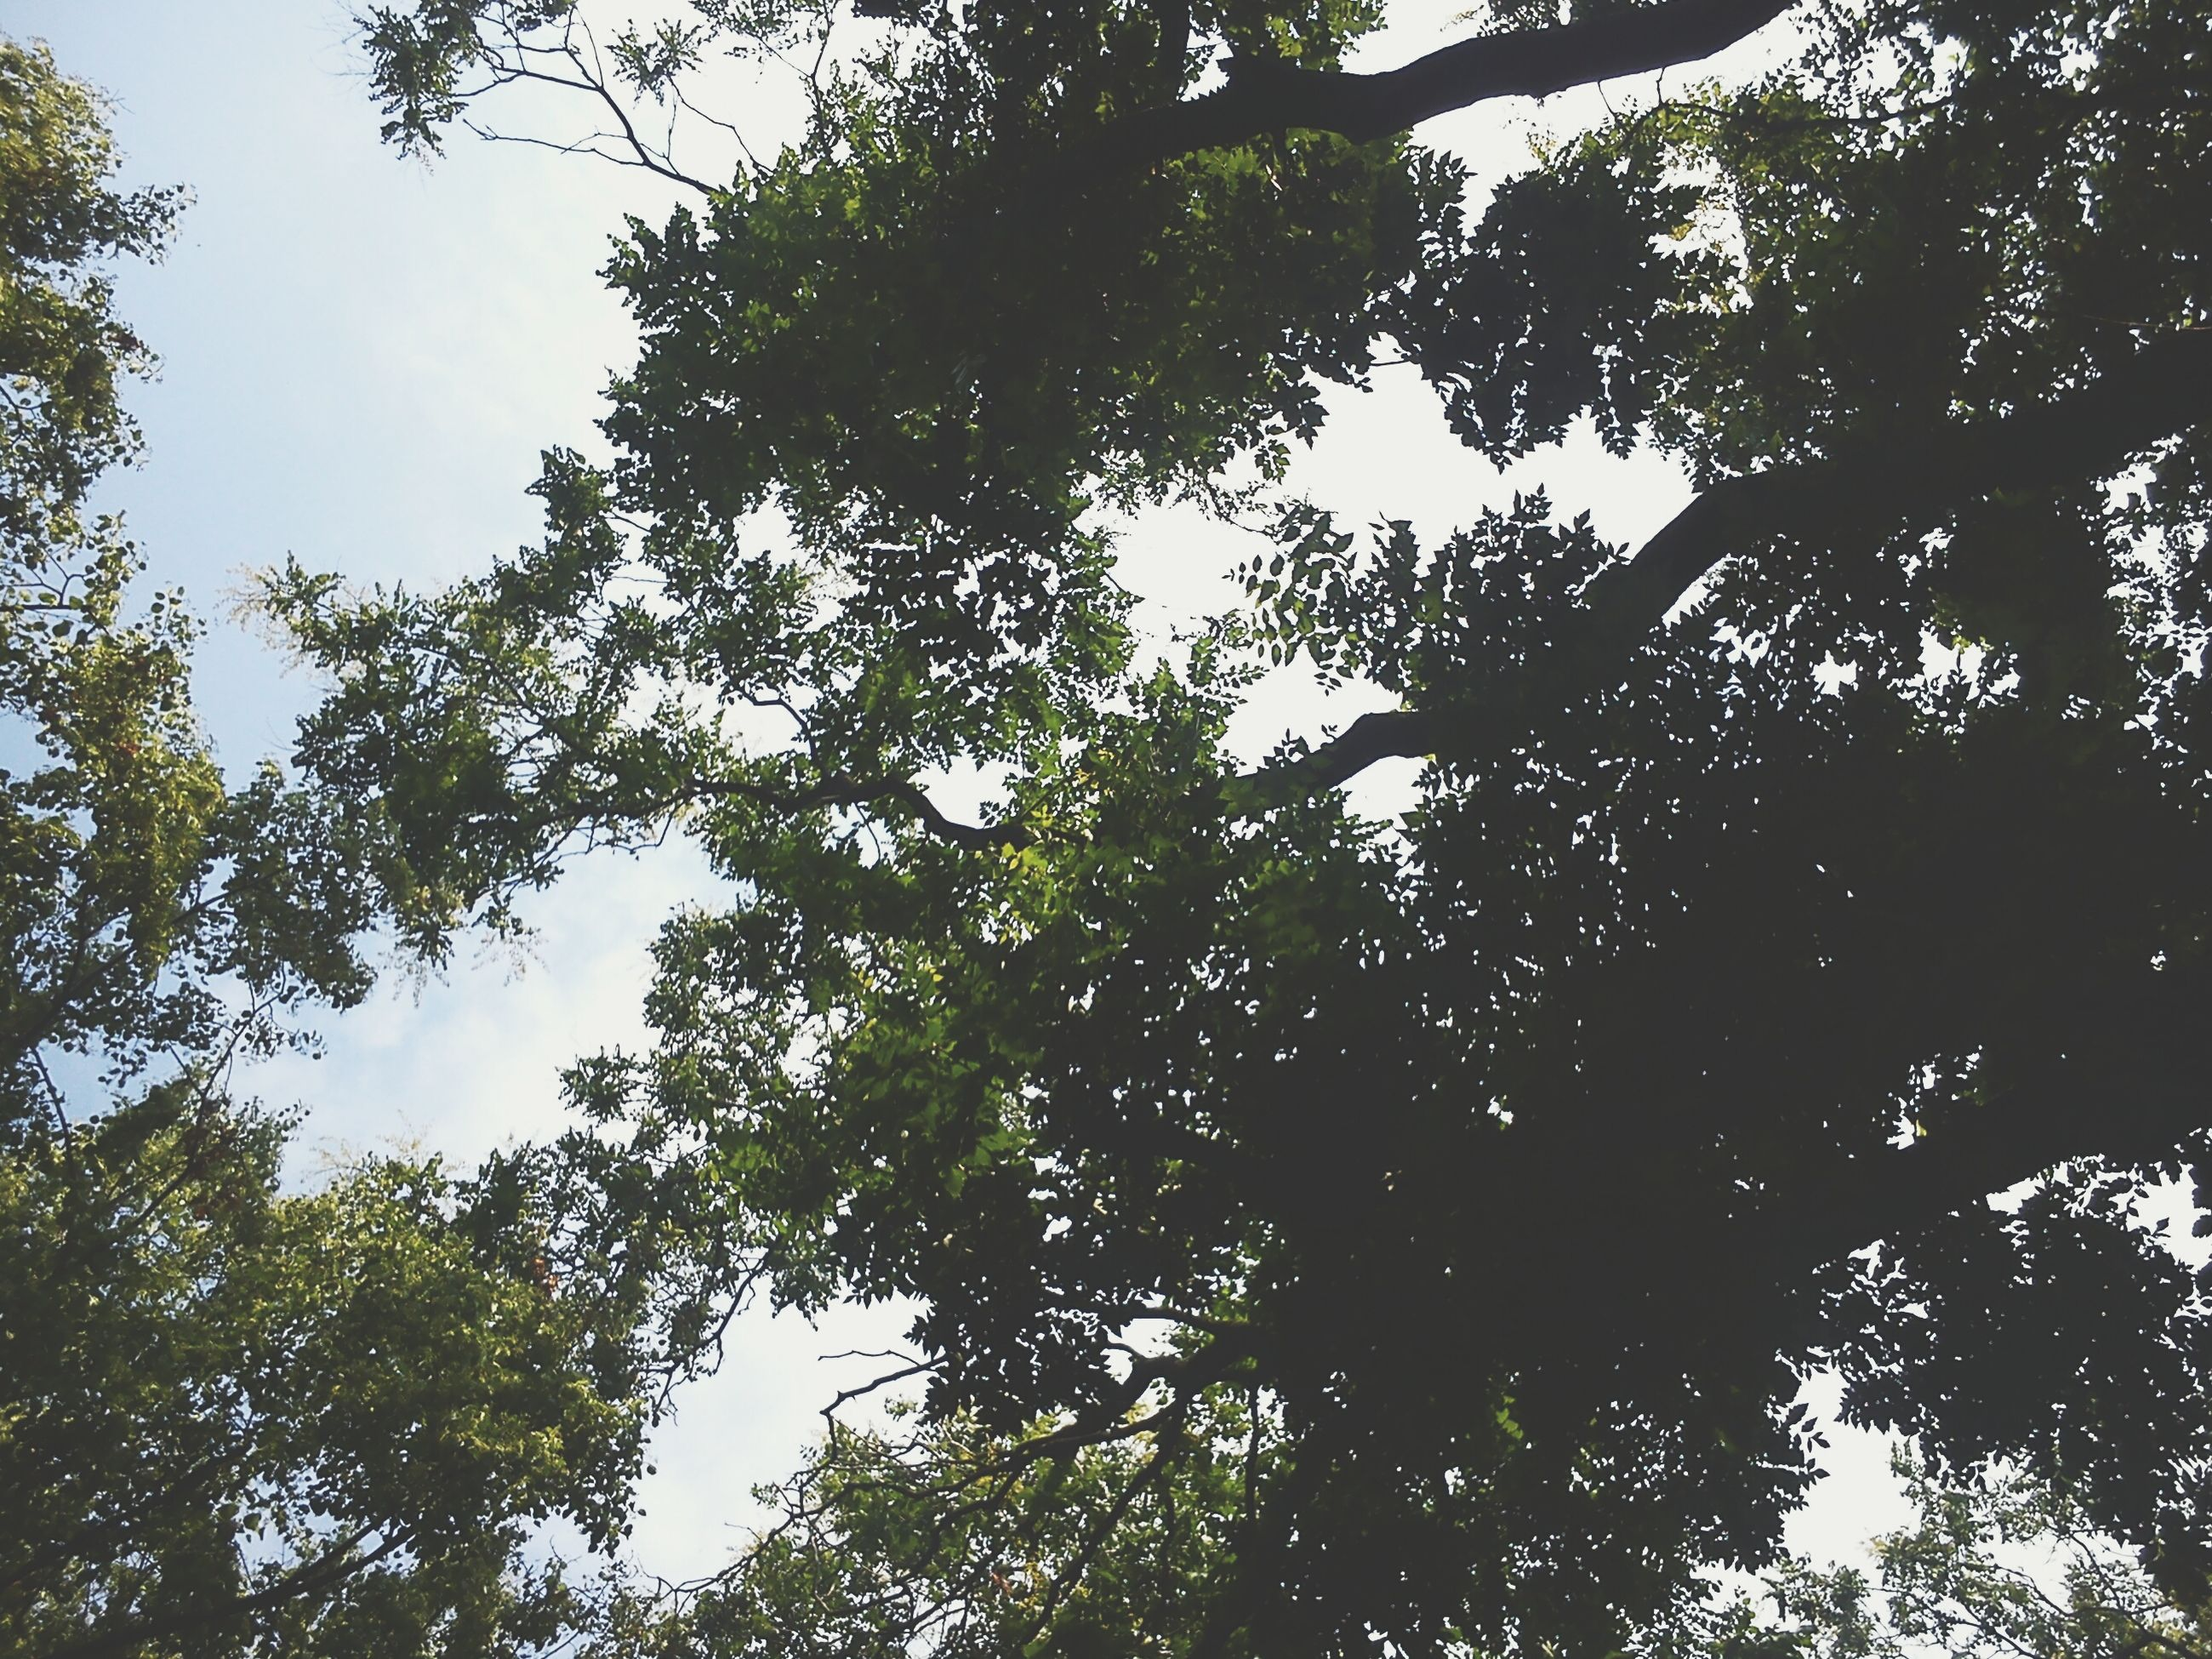 tree, low angle view, branch, growth, tranquility, nature, beauty in nature, sky, forest, scenics, tranquil scene, green color, outdoors, tree trunk, day, no people, clear sky, sunlight, lush foliage, leaf